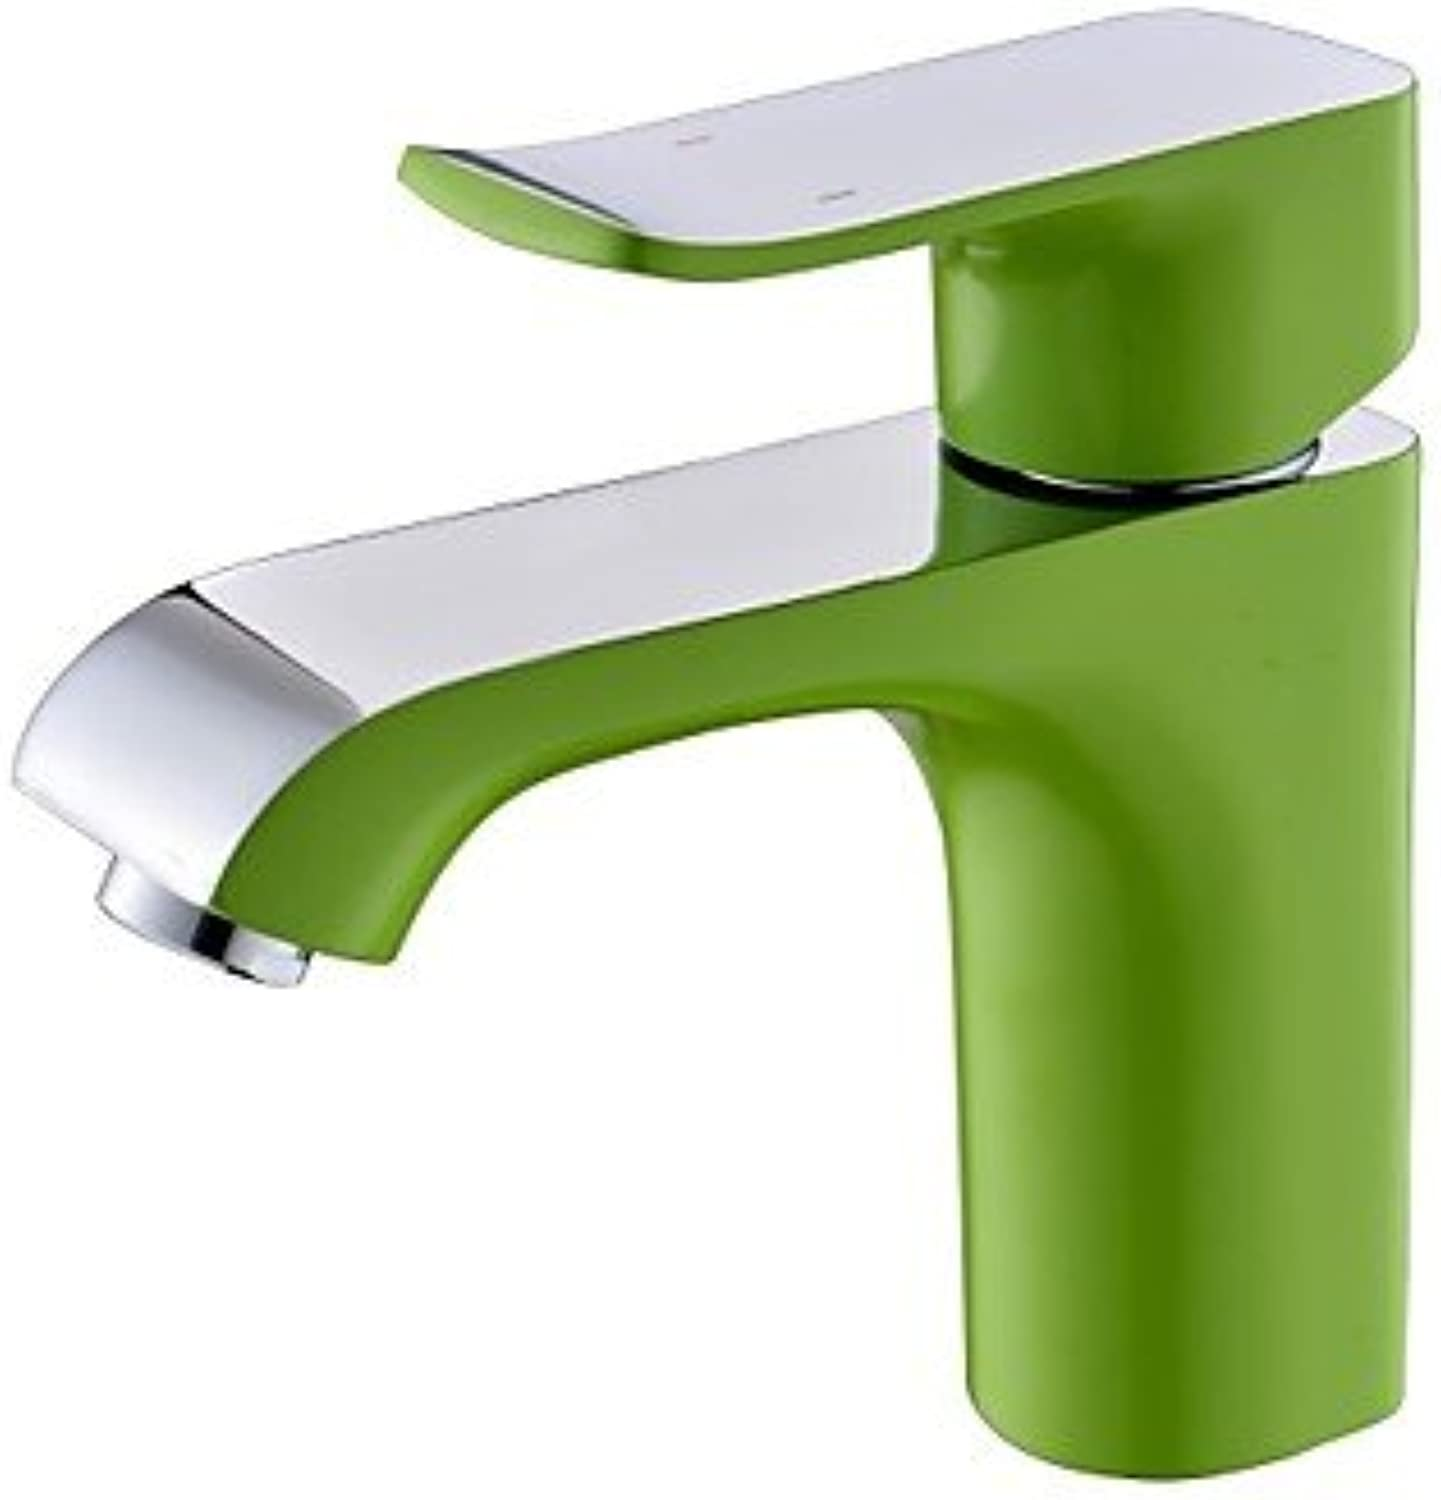 AA Faucet£? Contemporary popular single painting a bathroom sink faucet holes